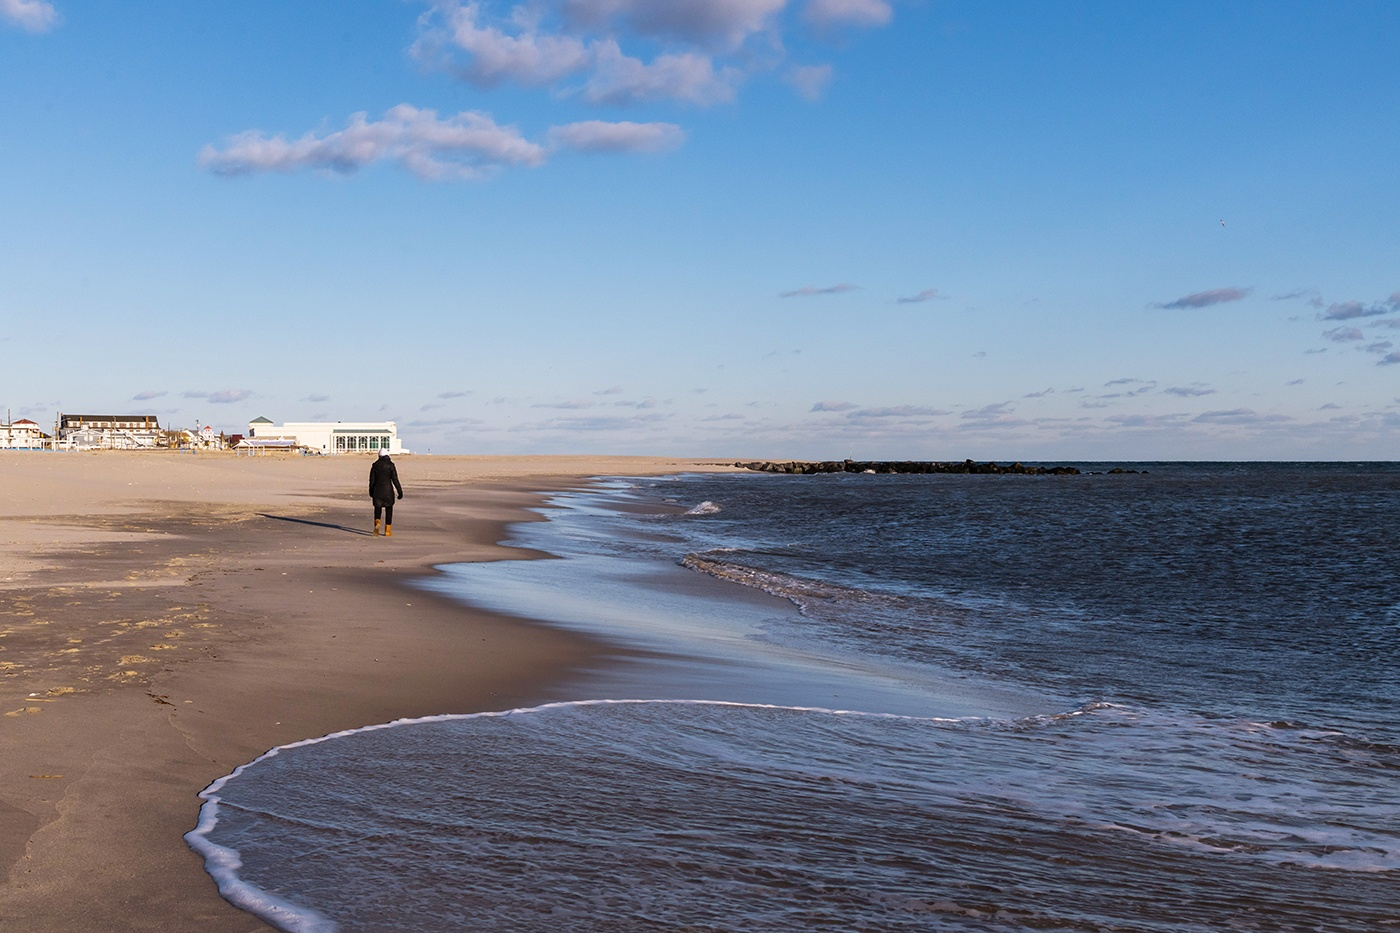 A person walking on the beach by the ocean in the winter on a bright blue sunny day